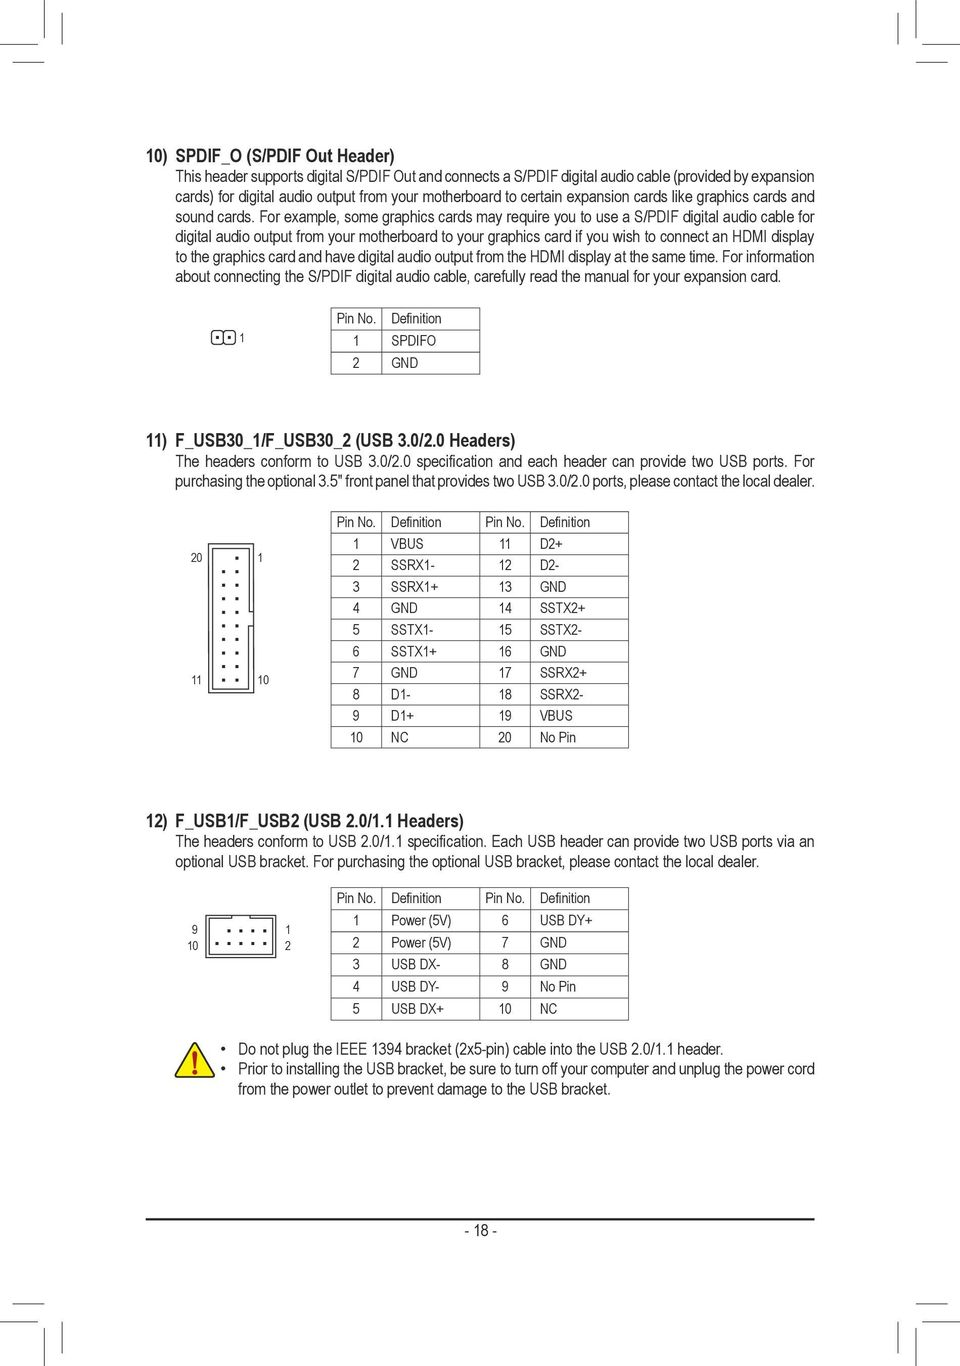 Ga Z170 Hd3 Ddr3 Pdf 2x5 1394 6 Pin Wiring Diagram For Example Some Graphics Cards May Require You To Use A S Pdif Digital